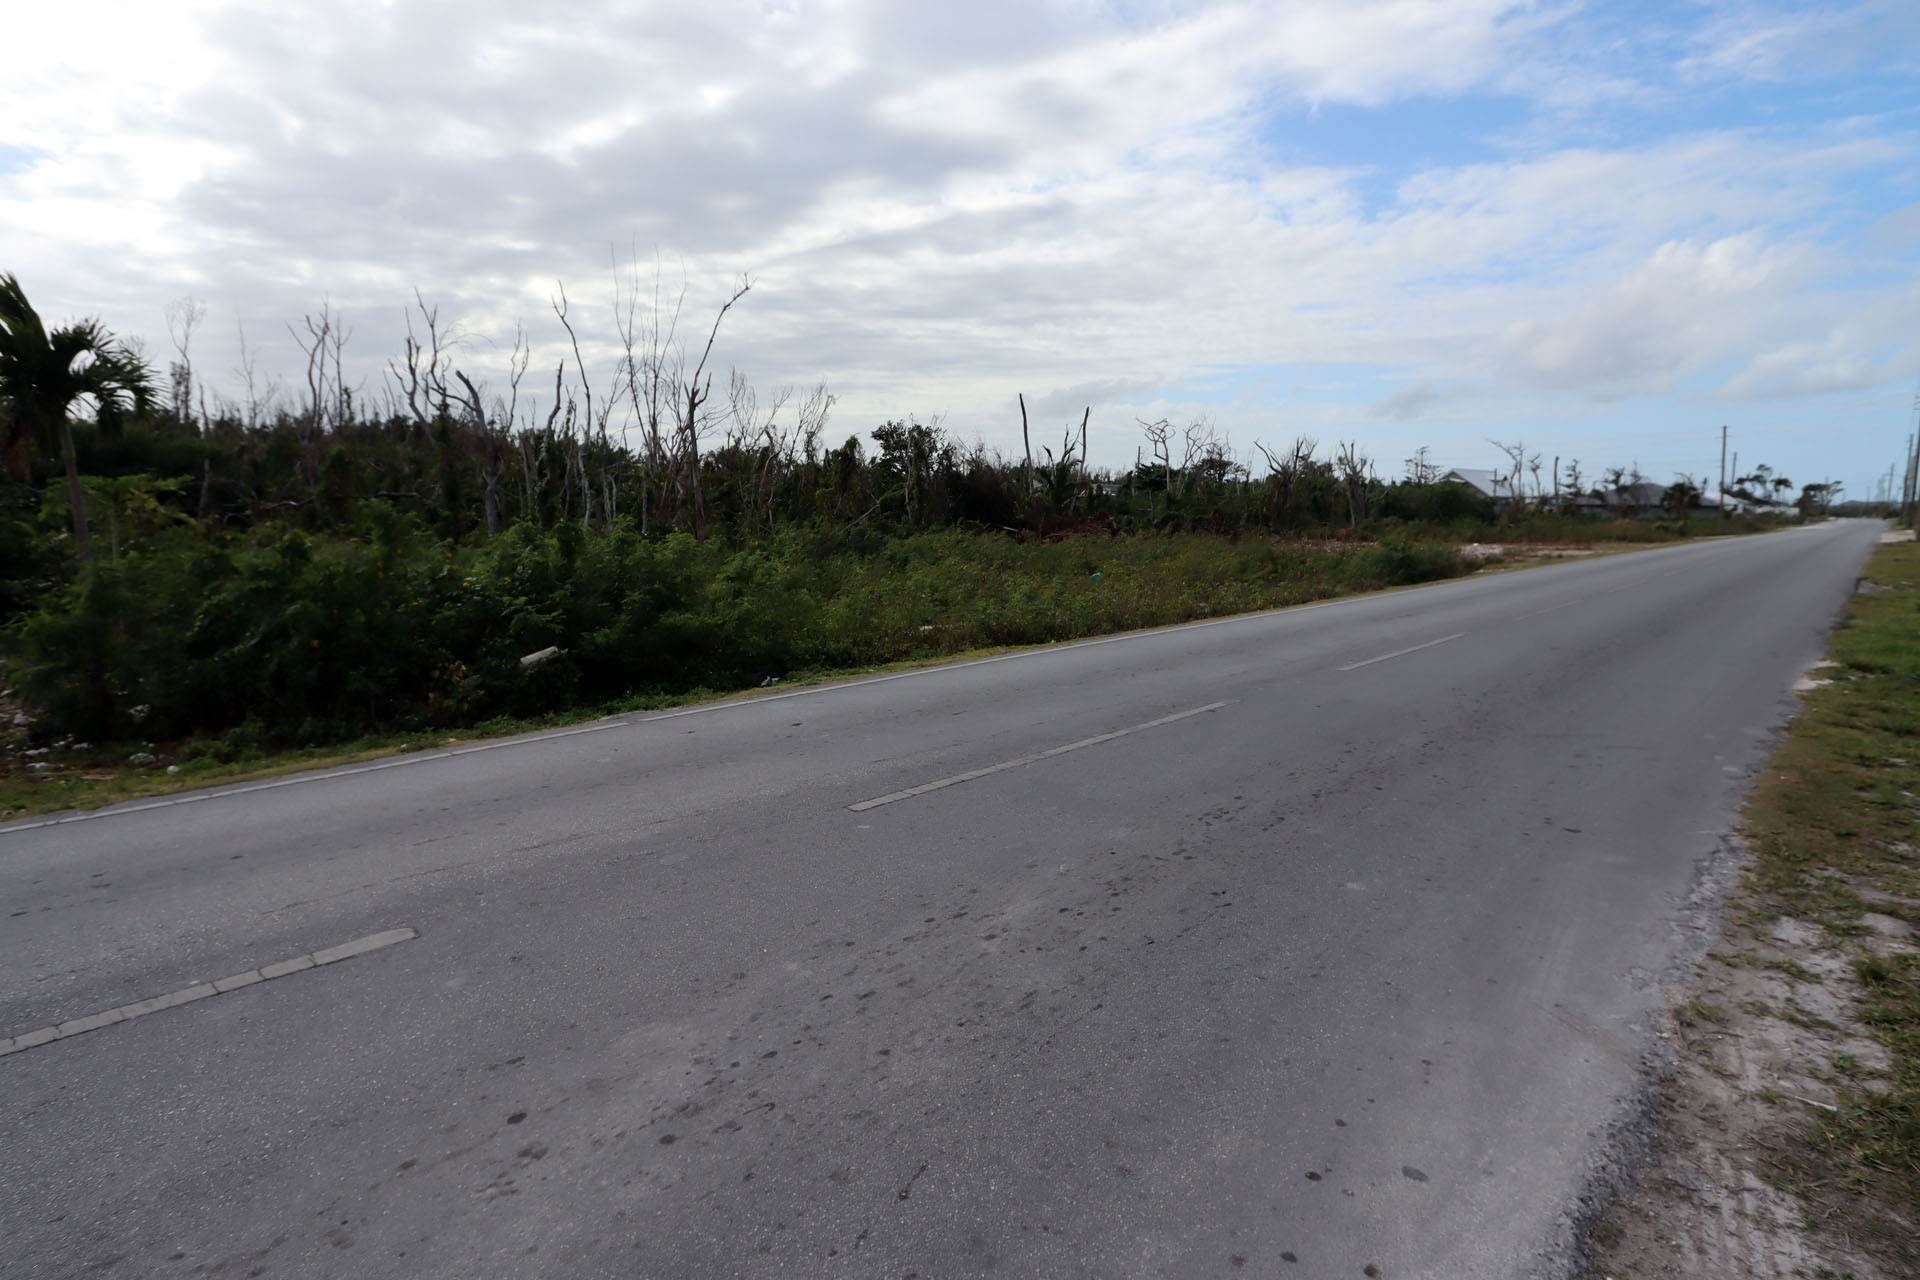 Land for Sale at Lot for development, Residential or Commercial - MLS 43273 Dundas Town, Abaco, Bahamas